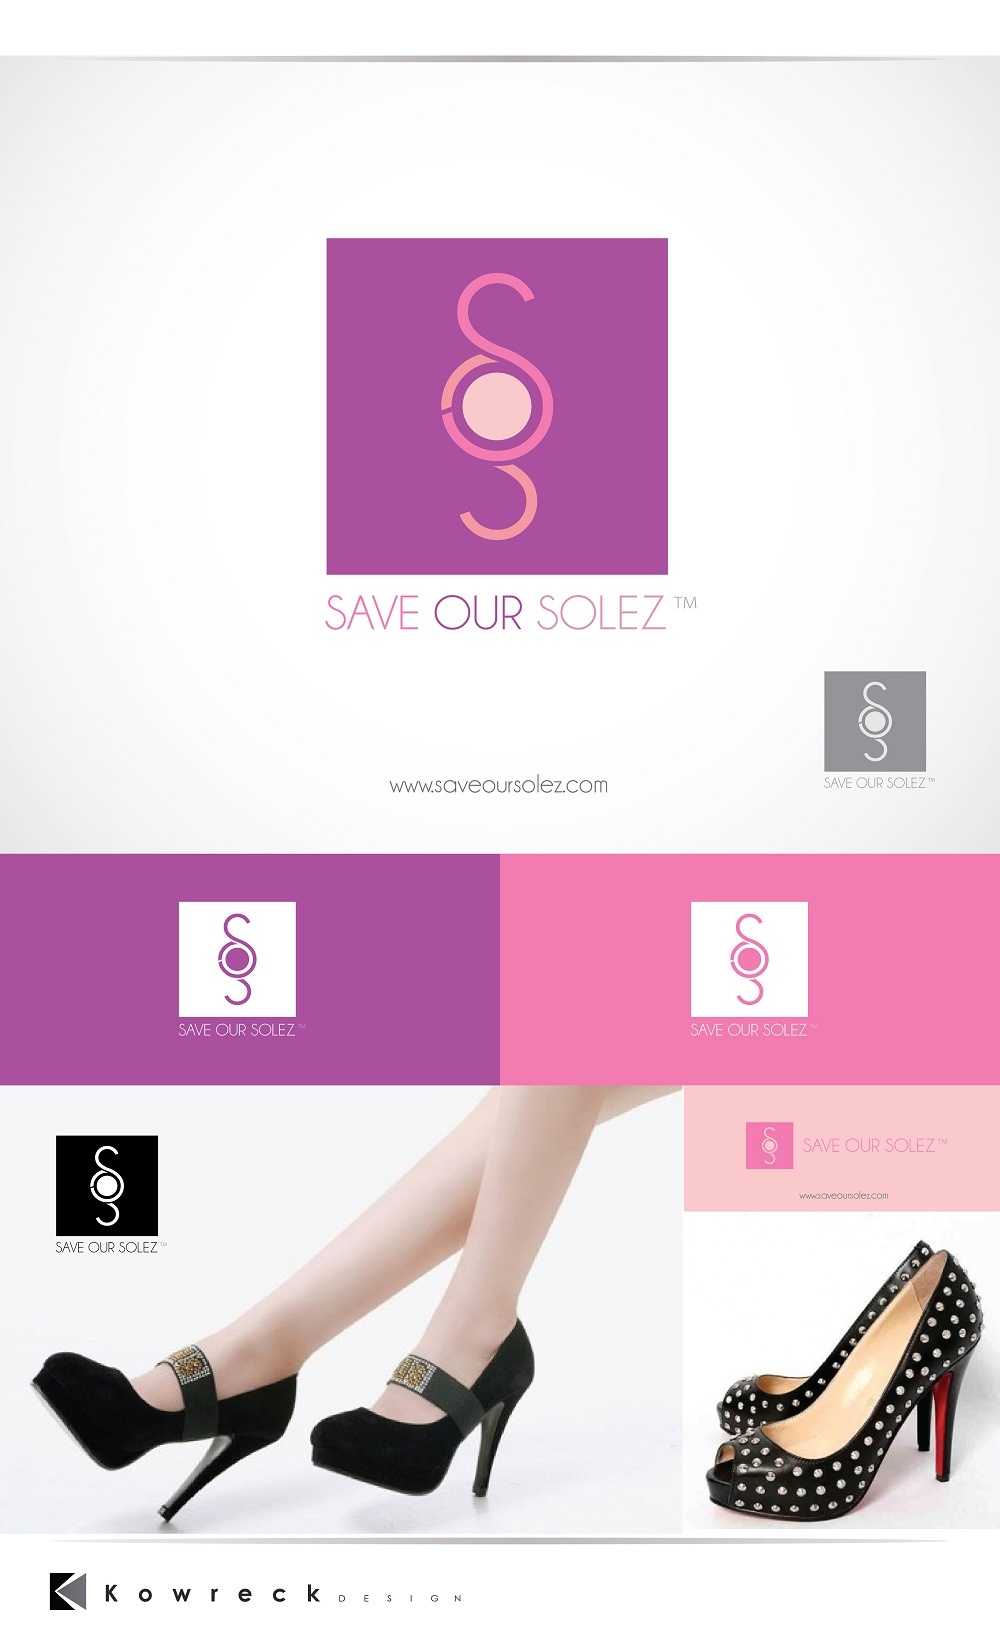 Logo Design by kowreck - Entry No. 100 in the Logo Design Contest Captivating Logo Design for Save Our Solez.